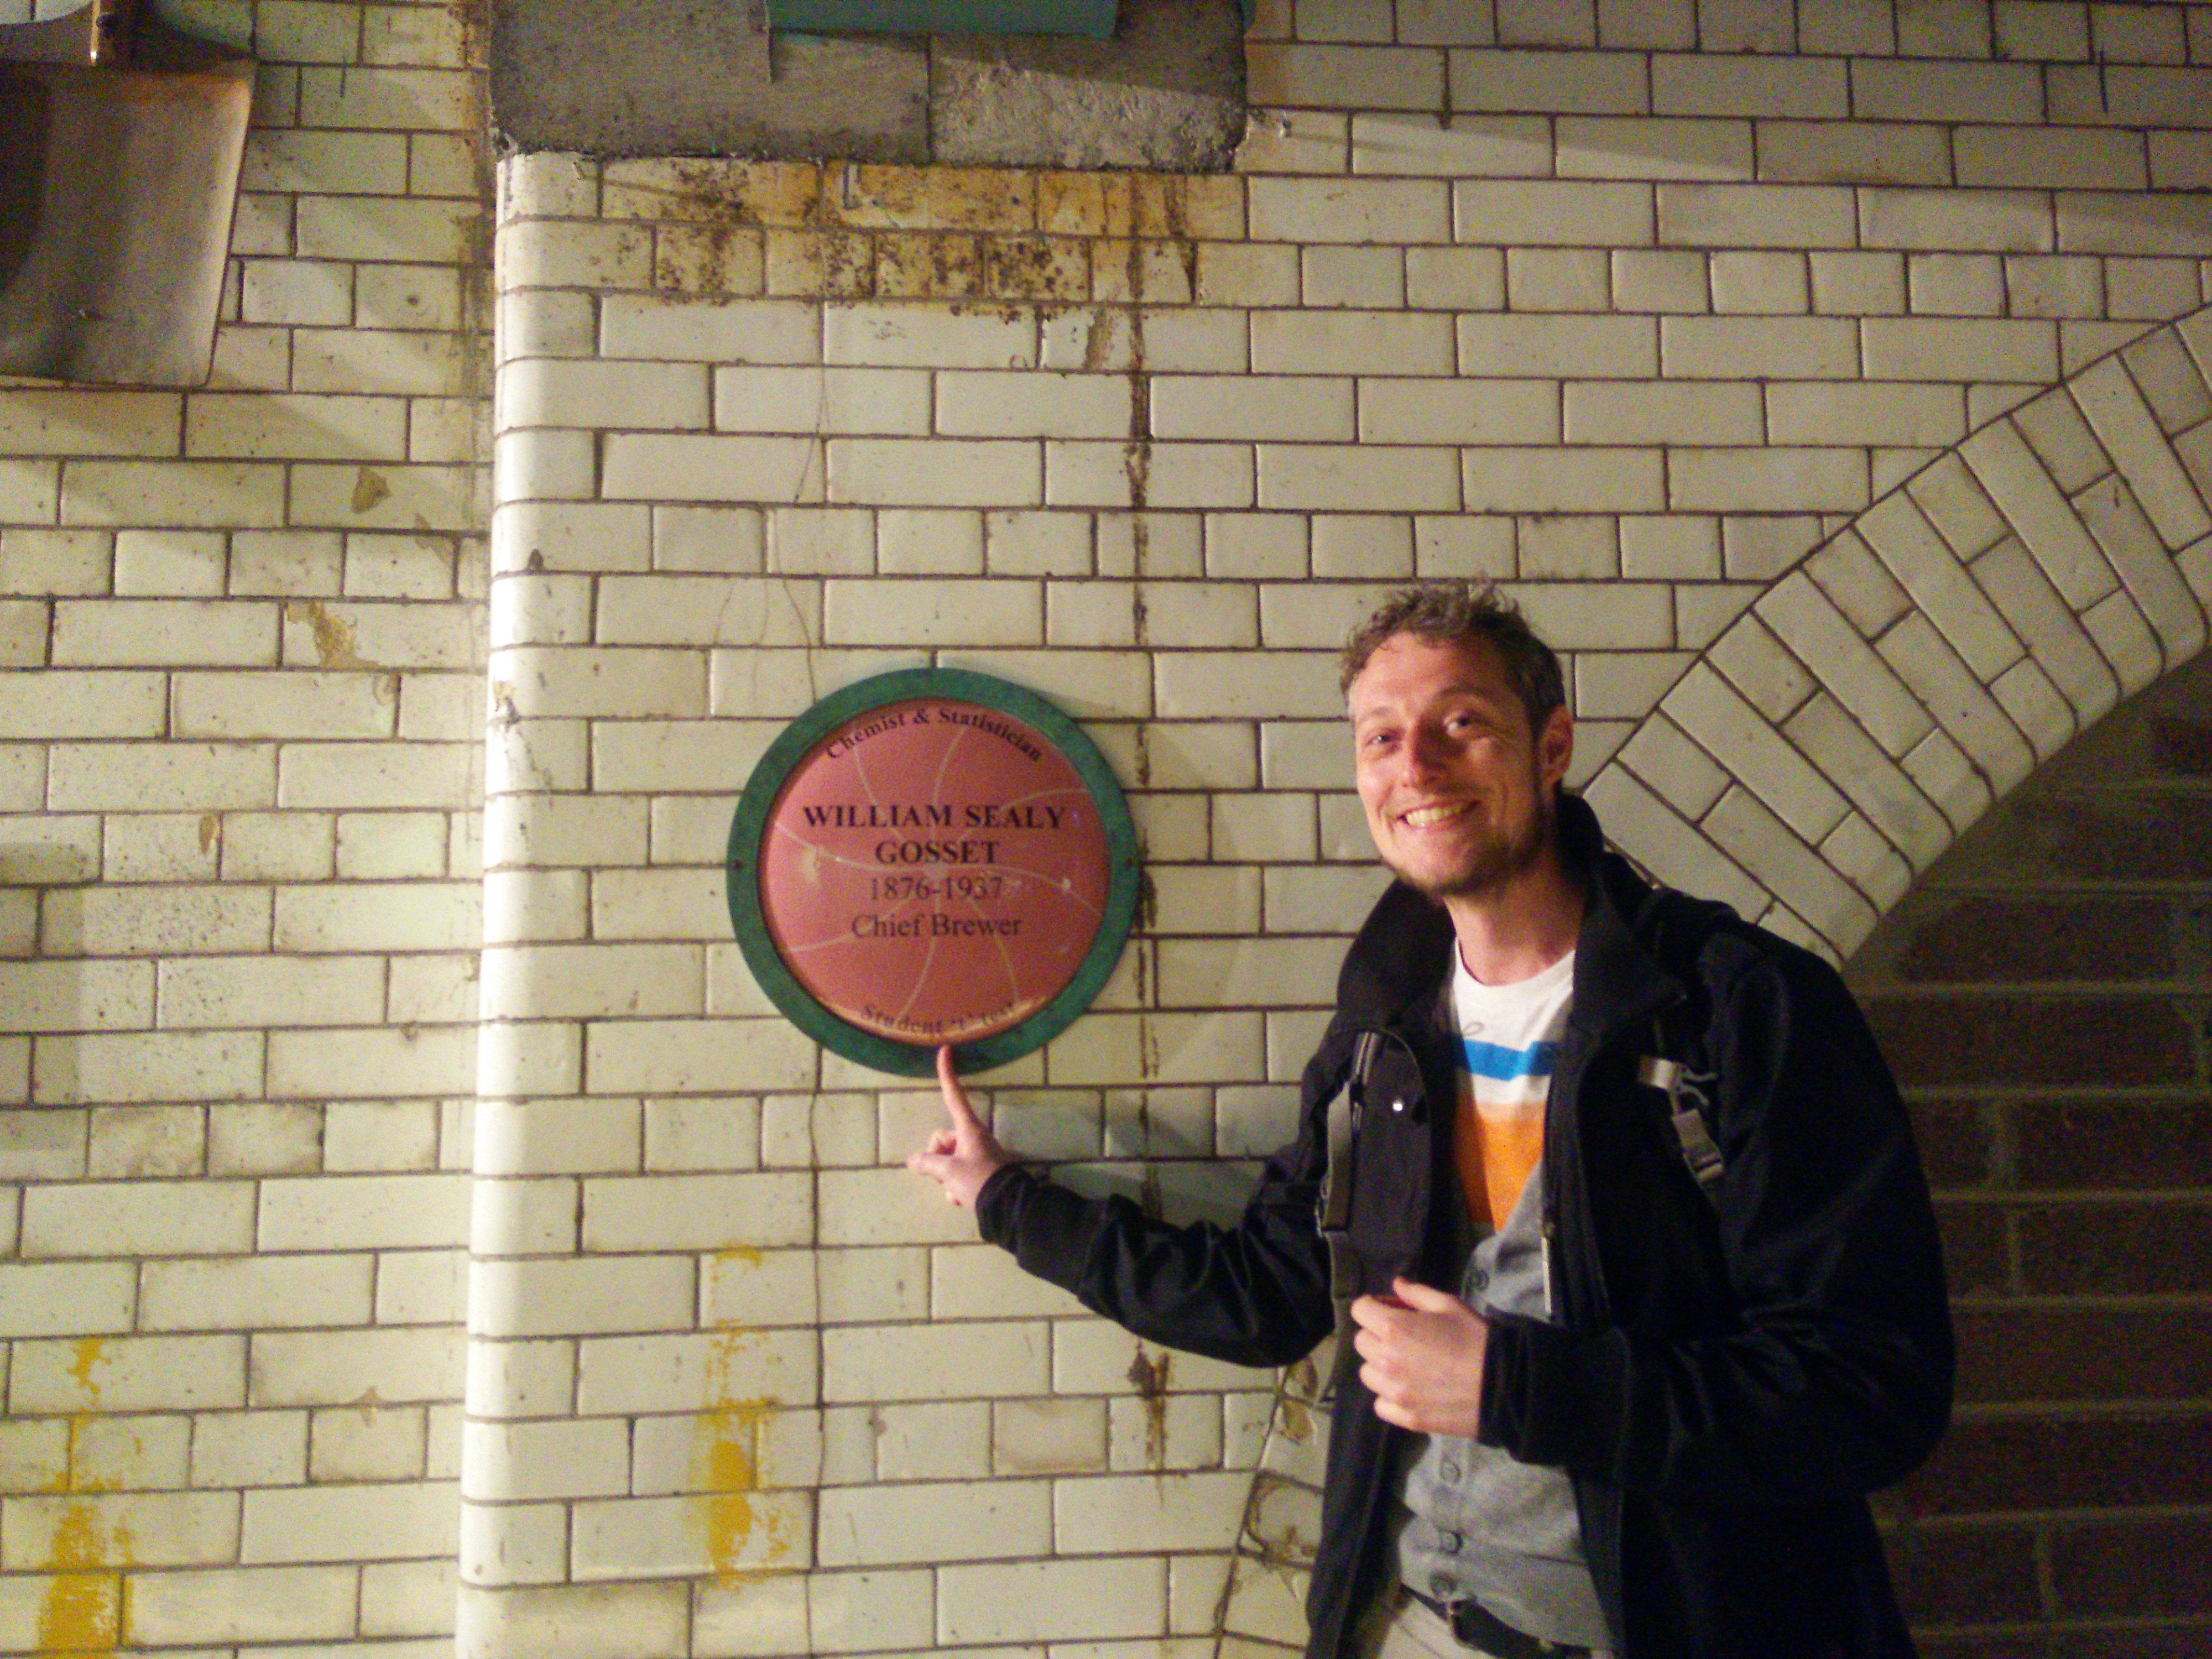 Me with a plaque in the Guinness Storehouse commemorating Gosset